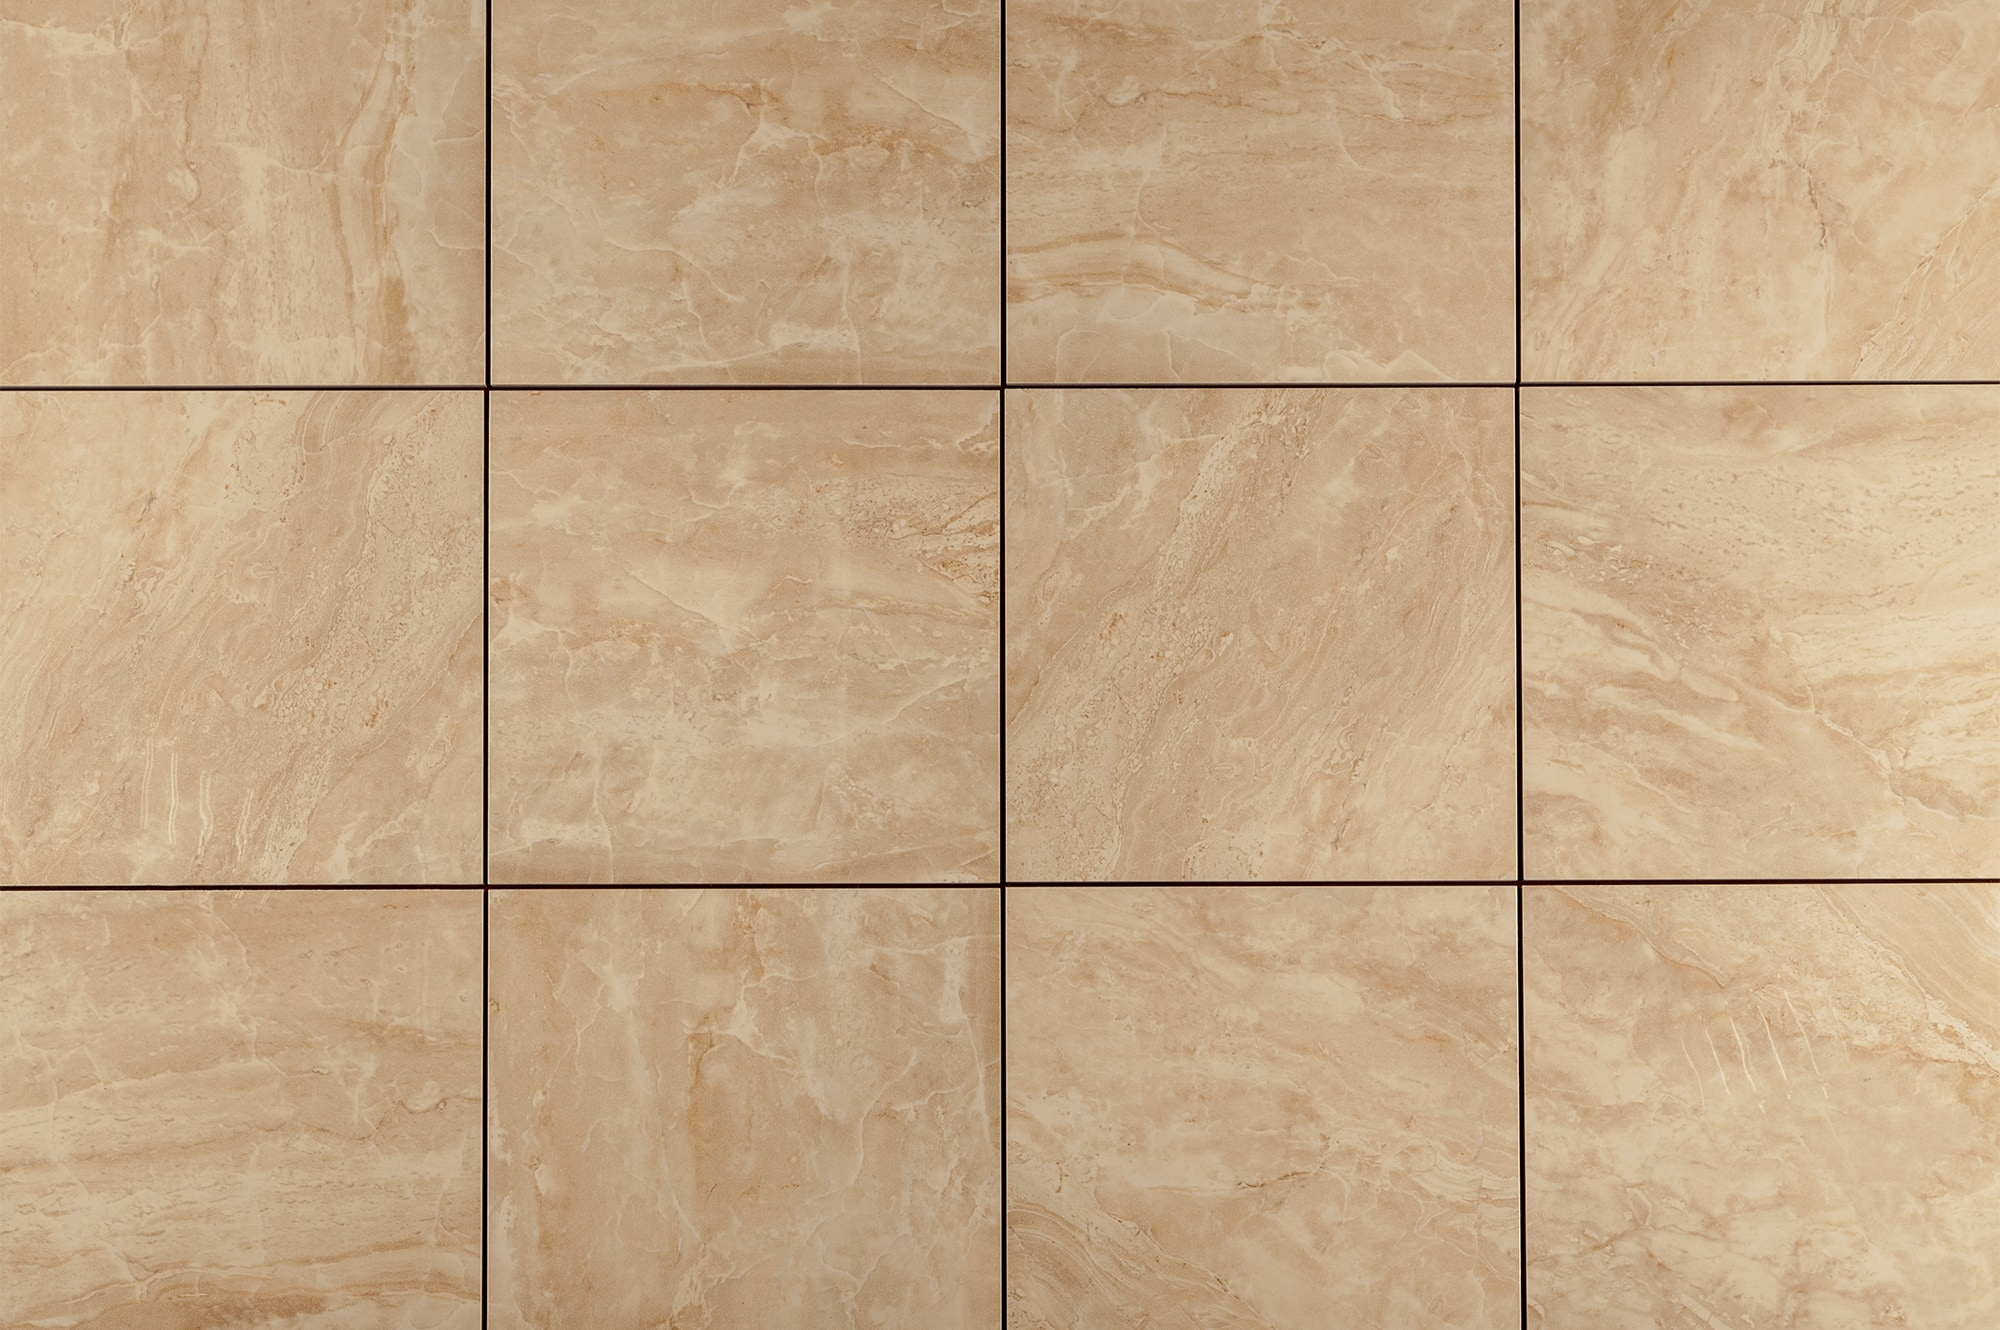 Free samples cabot porcelain tile pietra series onyx 18x18 free samples cabot porcelain tile pietra series onyx 18x18 polished dailygadgetfo Choice Image